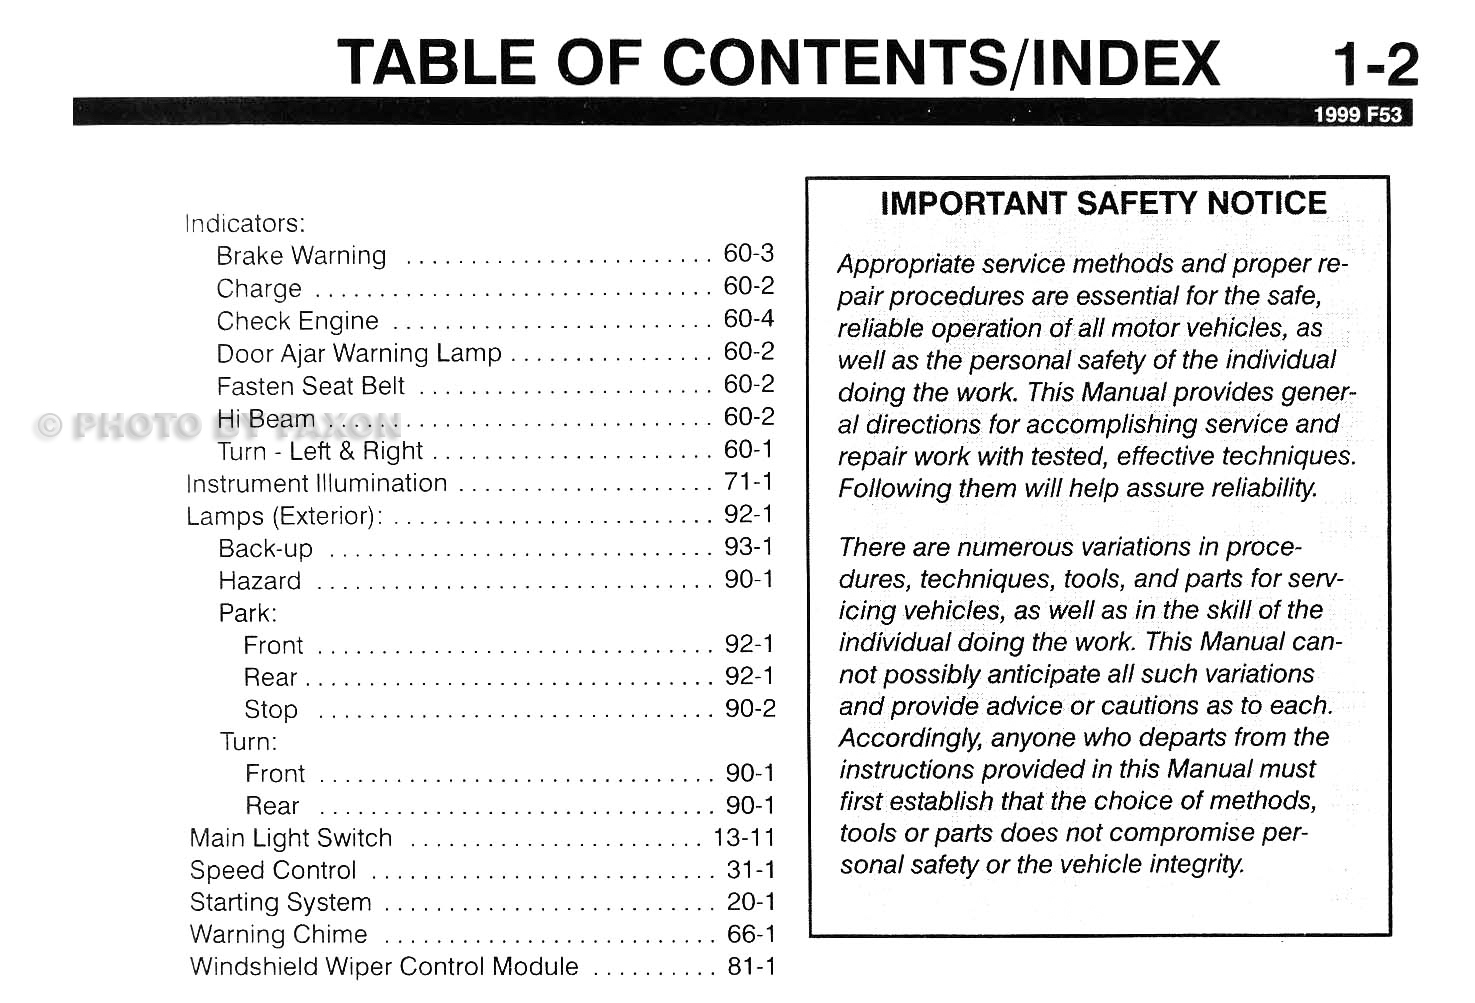 1999 Ford F53 Motorhome Class A Chassis Wiring Diagram Manual Stereo Table Of Contents Page 2